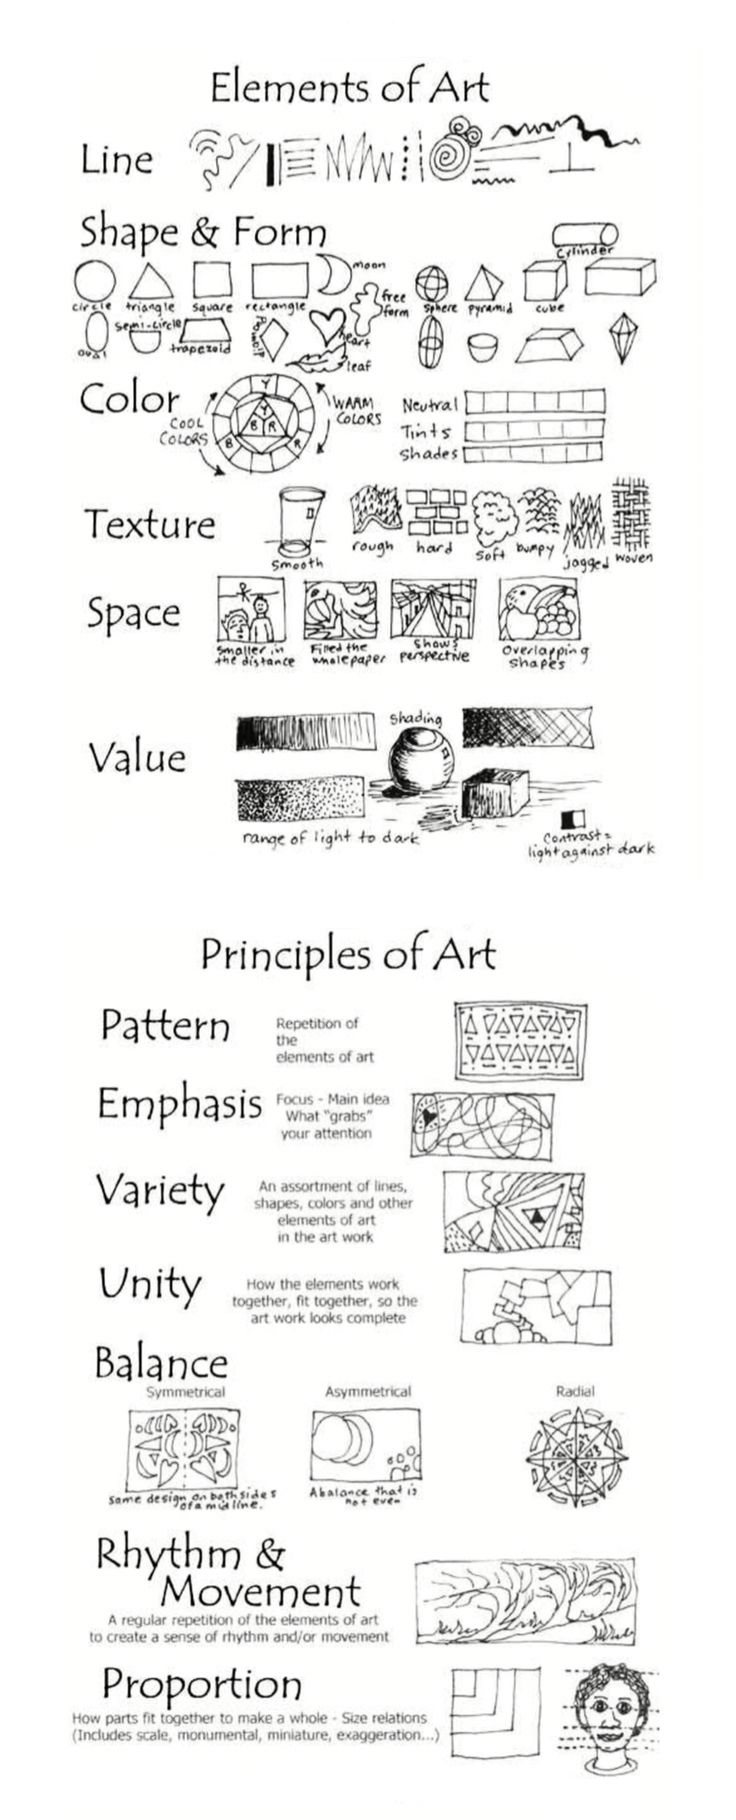 Elements Of Art And Principles Of Design Quiz Answers